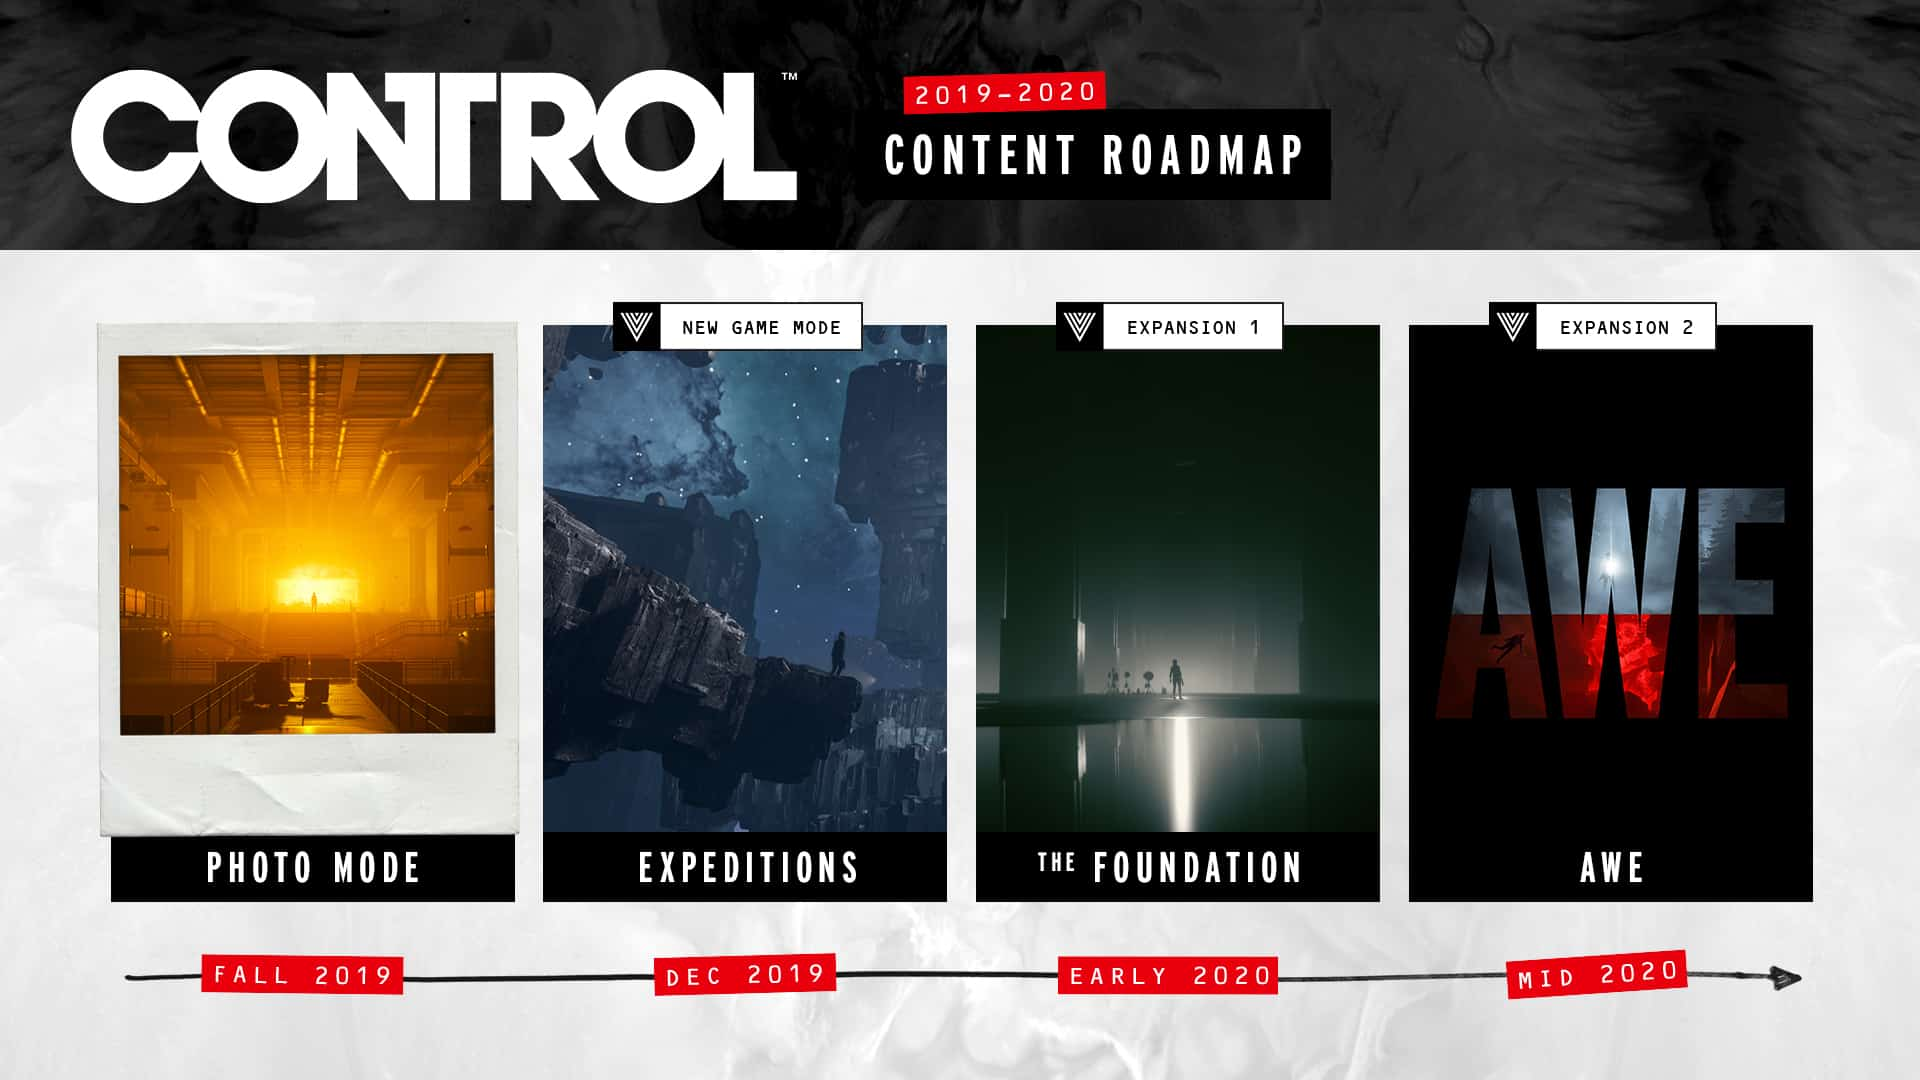 505 Games & Remedy Entertainment Announce New Upcoming Content For Control